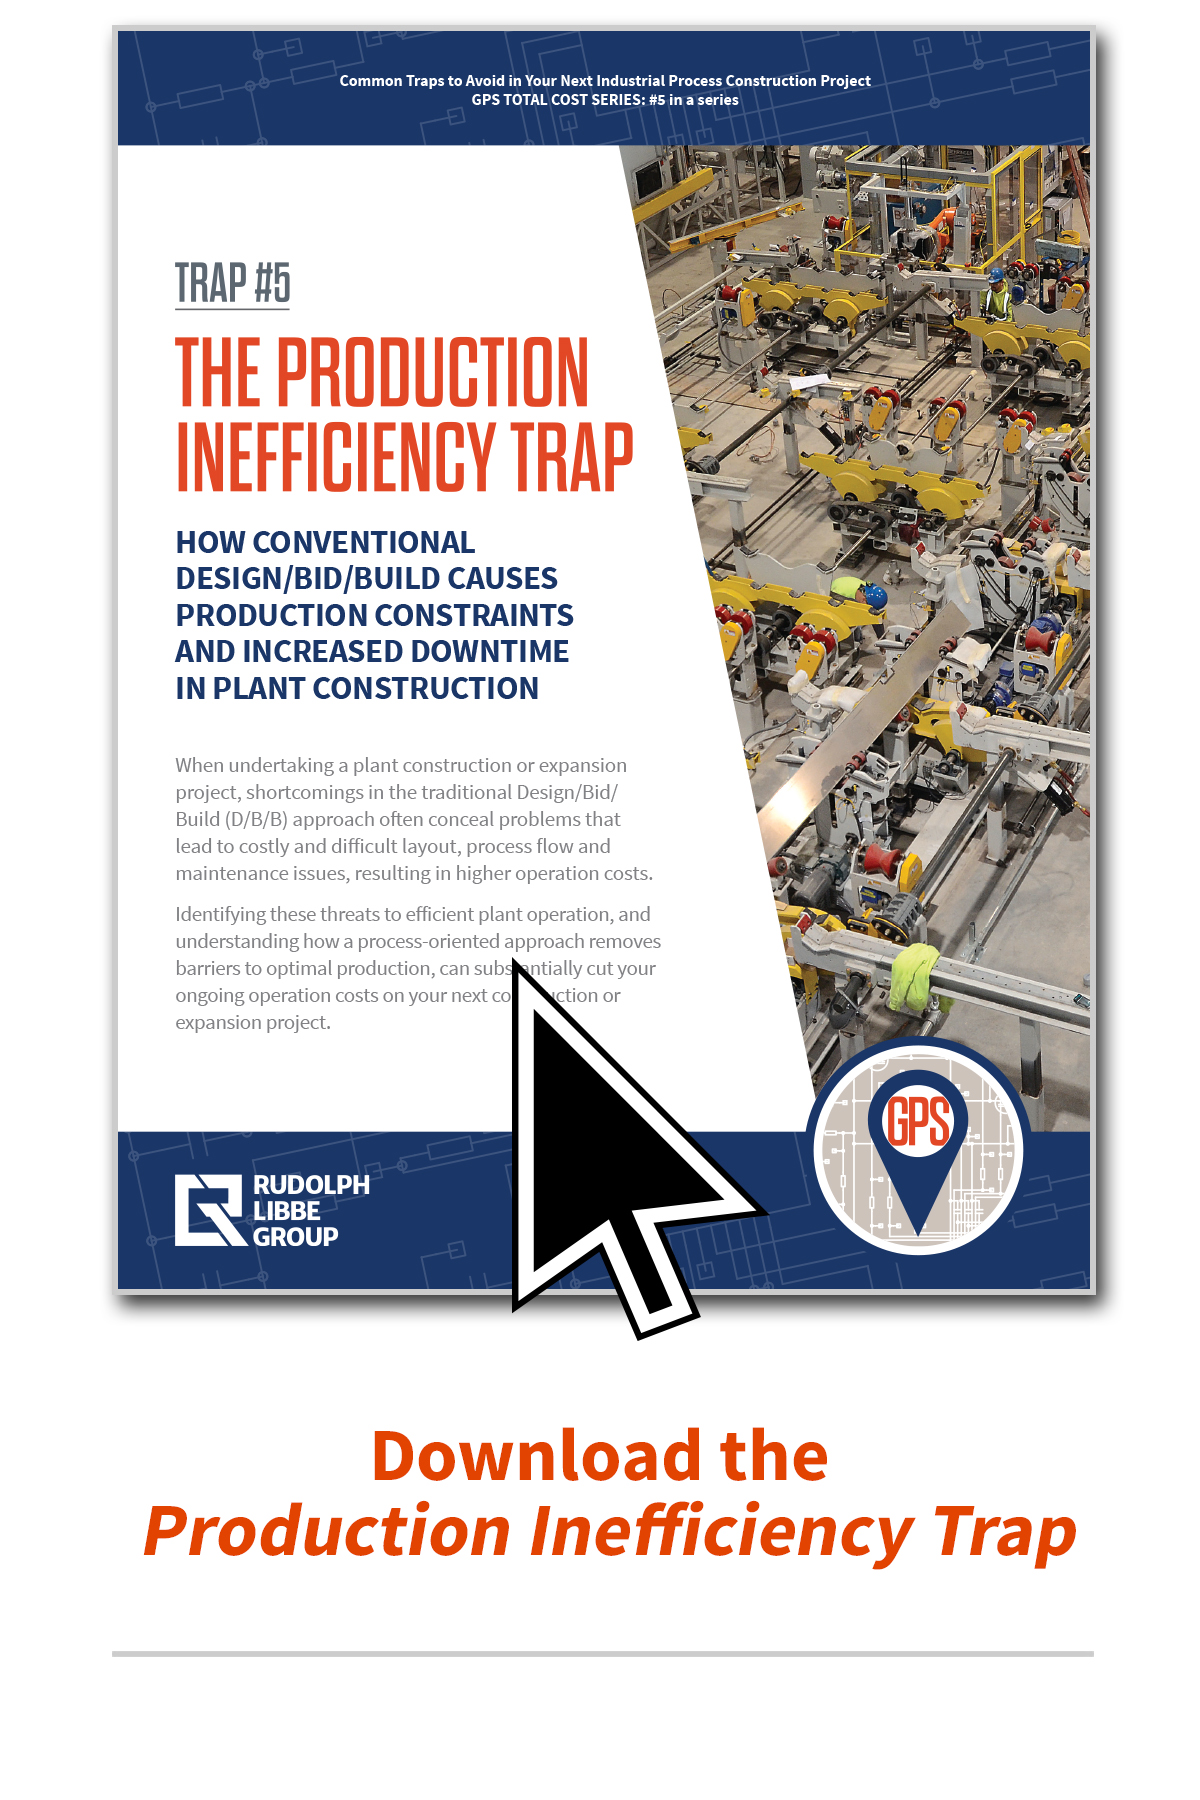 Production inefficiency Trap